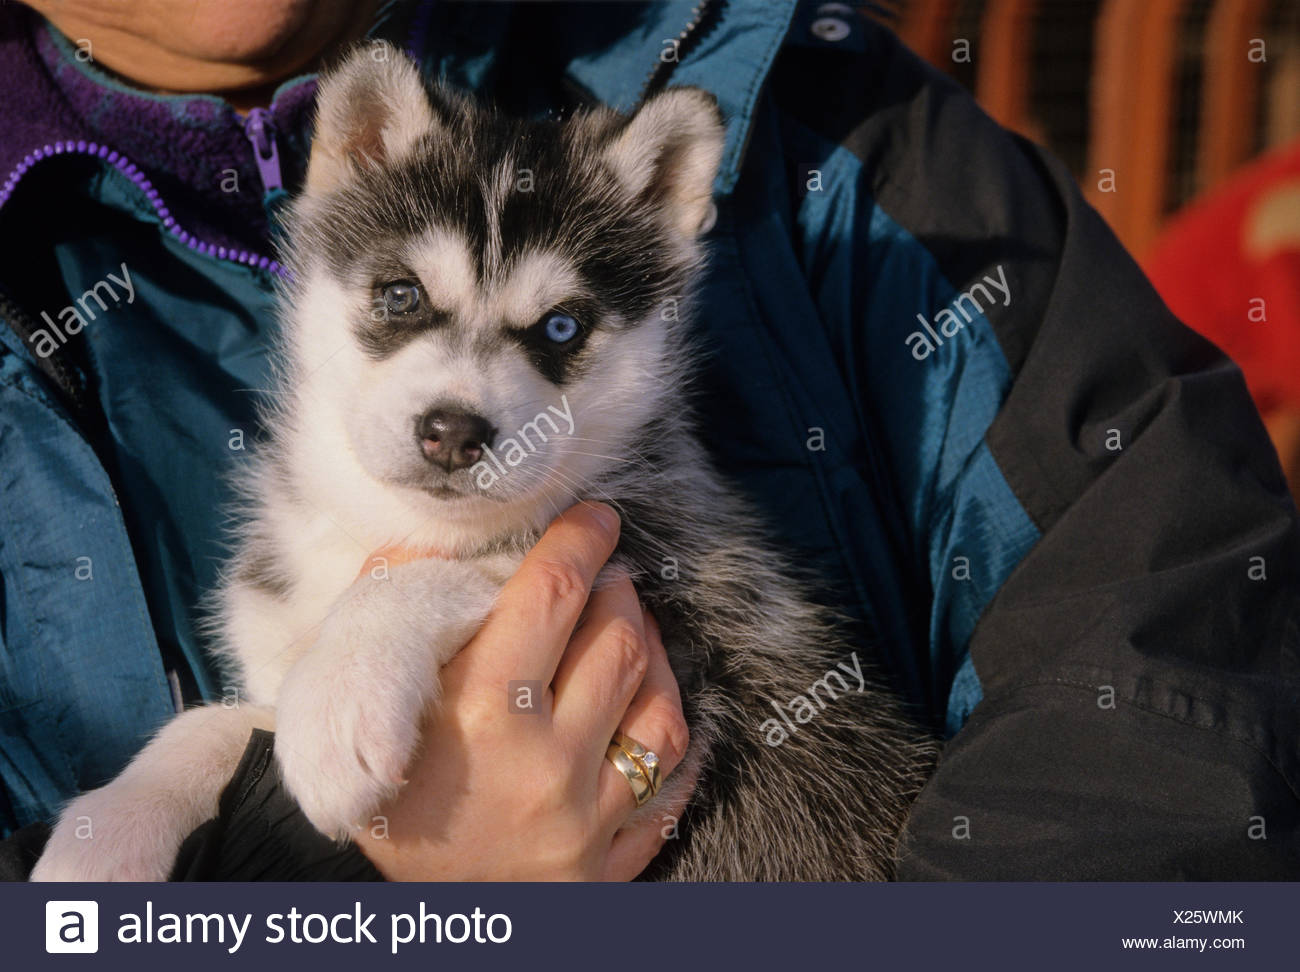 Cute Siberian Husky (Canis lupus familiaris) puppy looking at the camera Central Ontario, Canada. Stock Photo